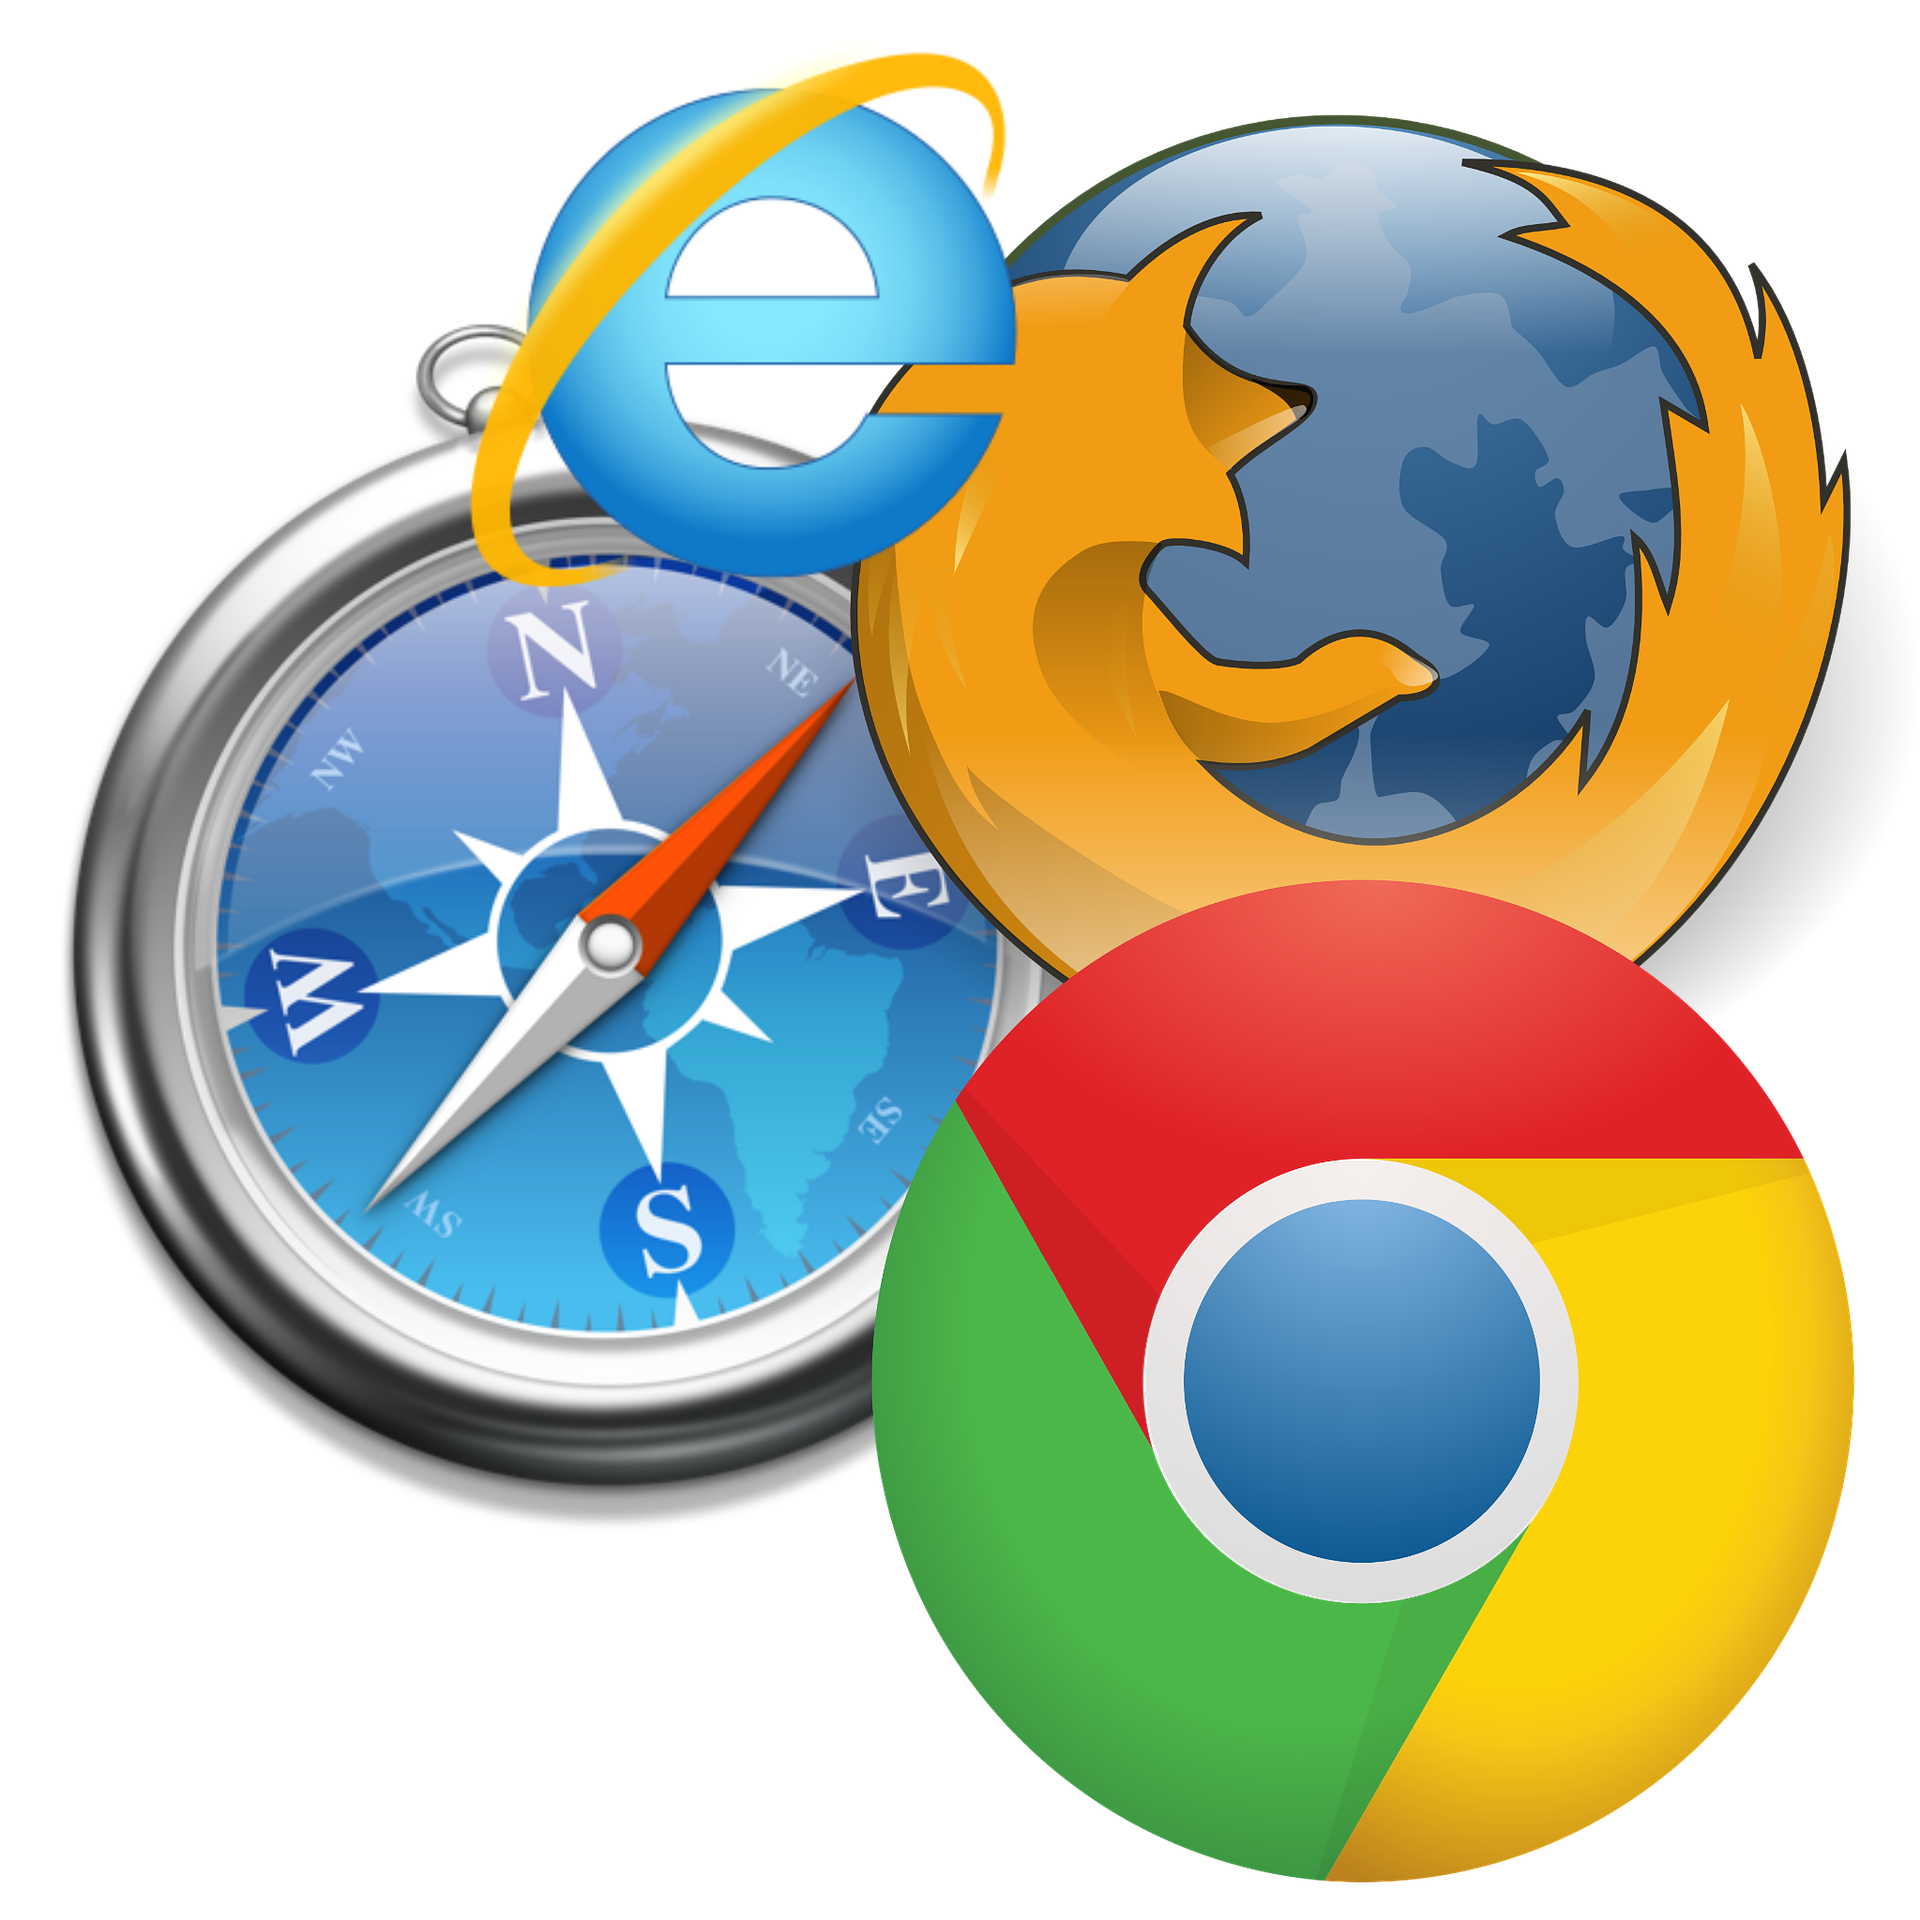 chrome-firefox-safari-internet-explorer-browsers-affected-by-poodle-bug